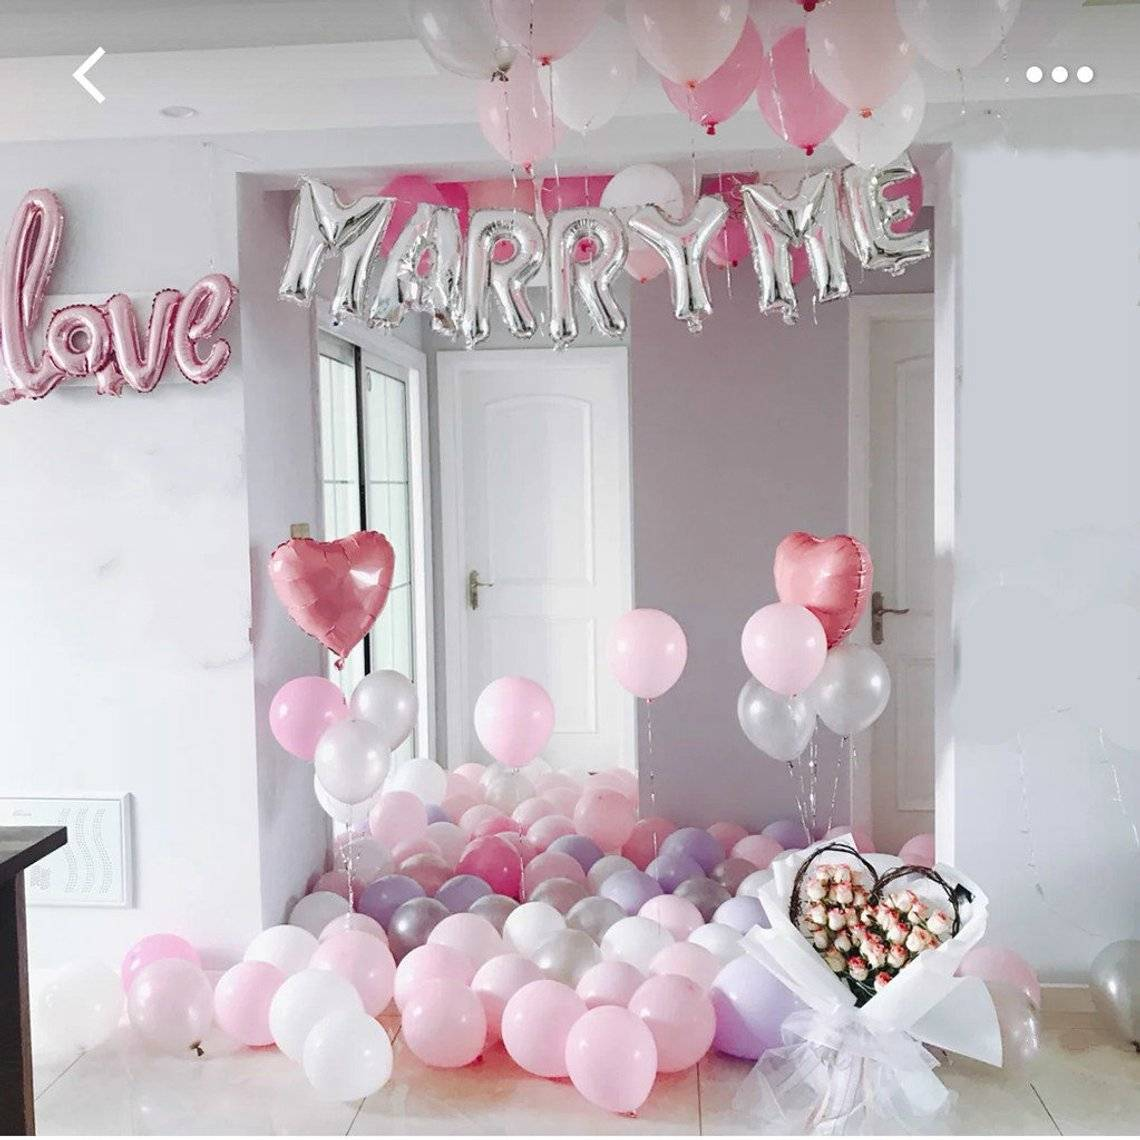 Marriage Proposal Decorations Balloons | Valentine's day Silver Marry Me Balloon Set | Proposal banner sign | Marriage Proposal Ideas